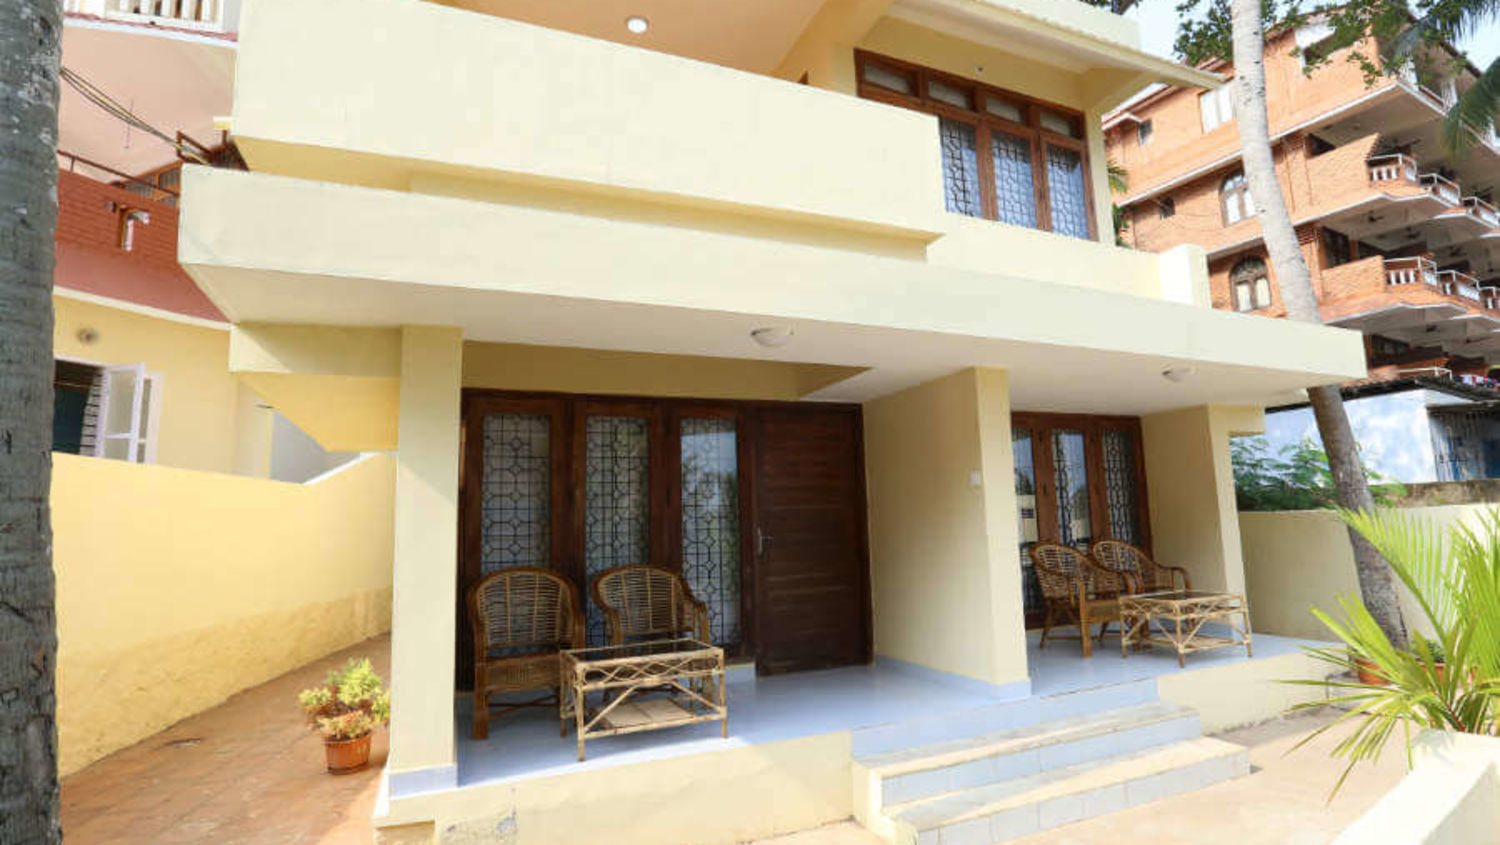 Hotels near Kovalam beach, Budget villas near Kovalam beach, best budget rooms in Kovalam 29